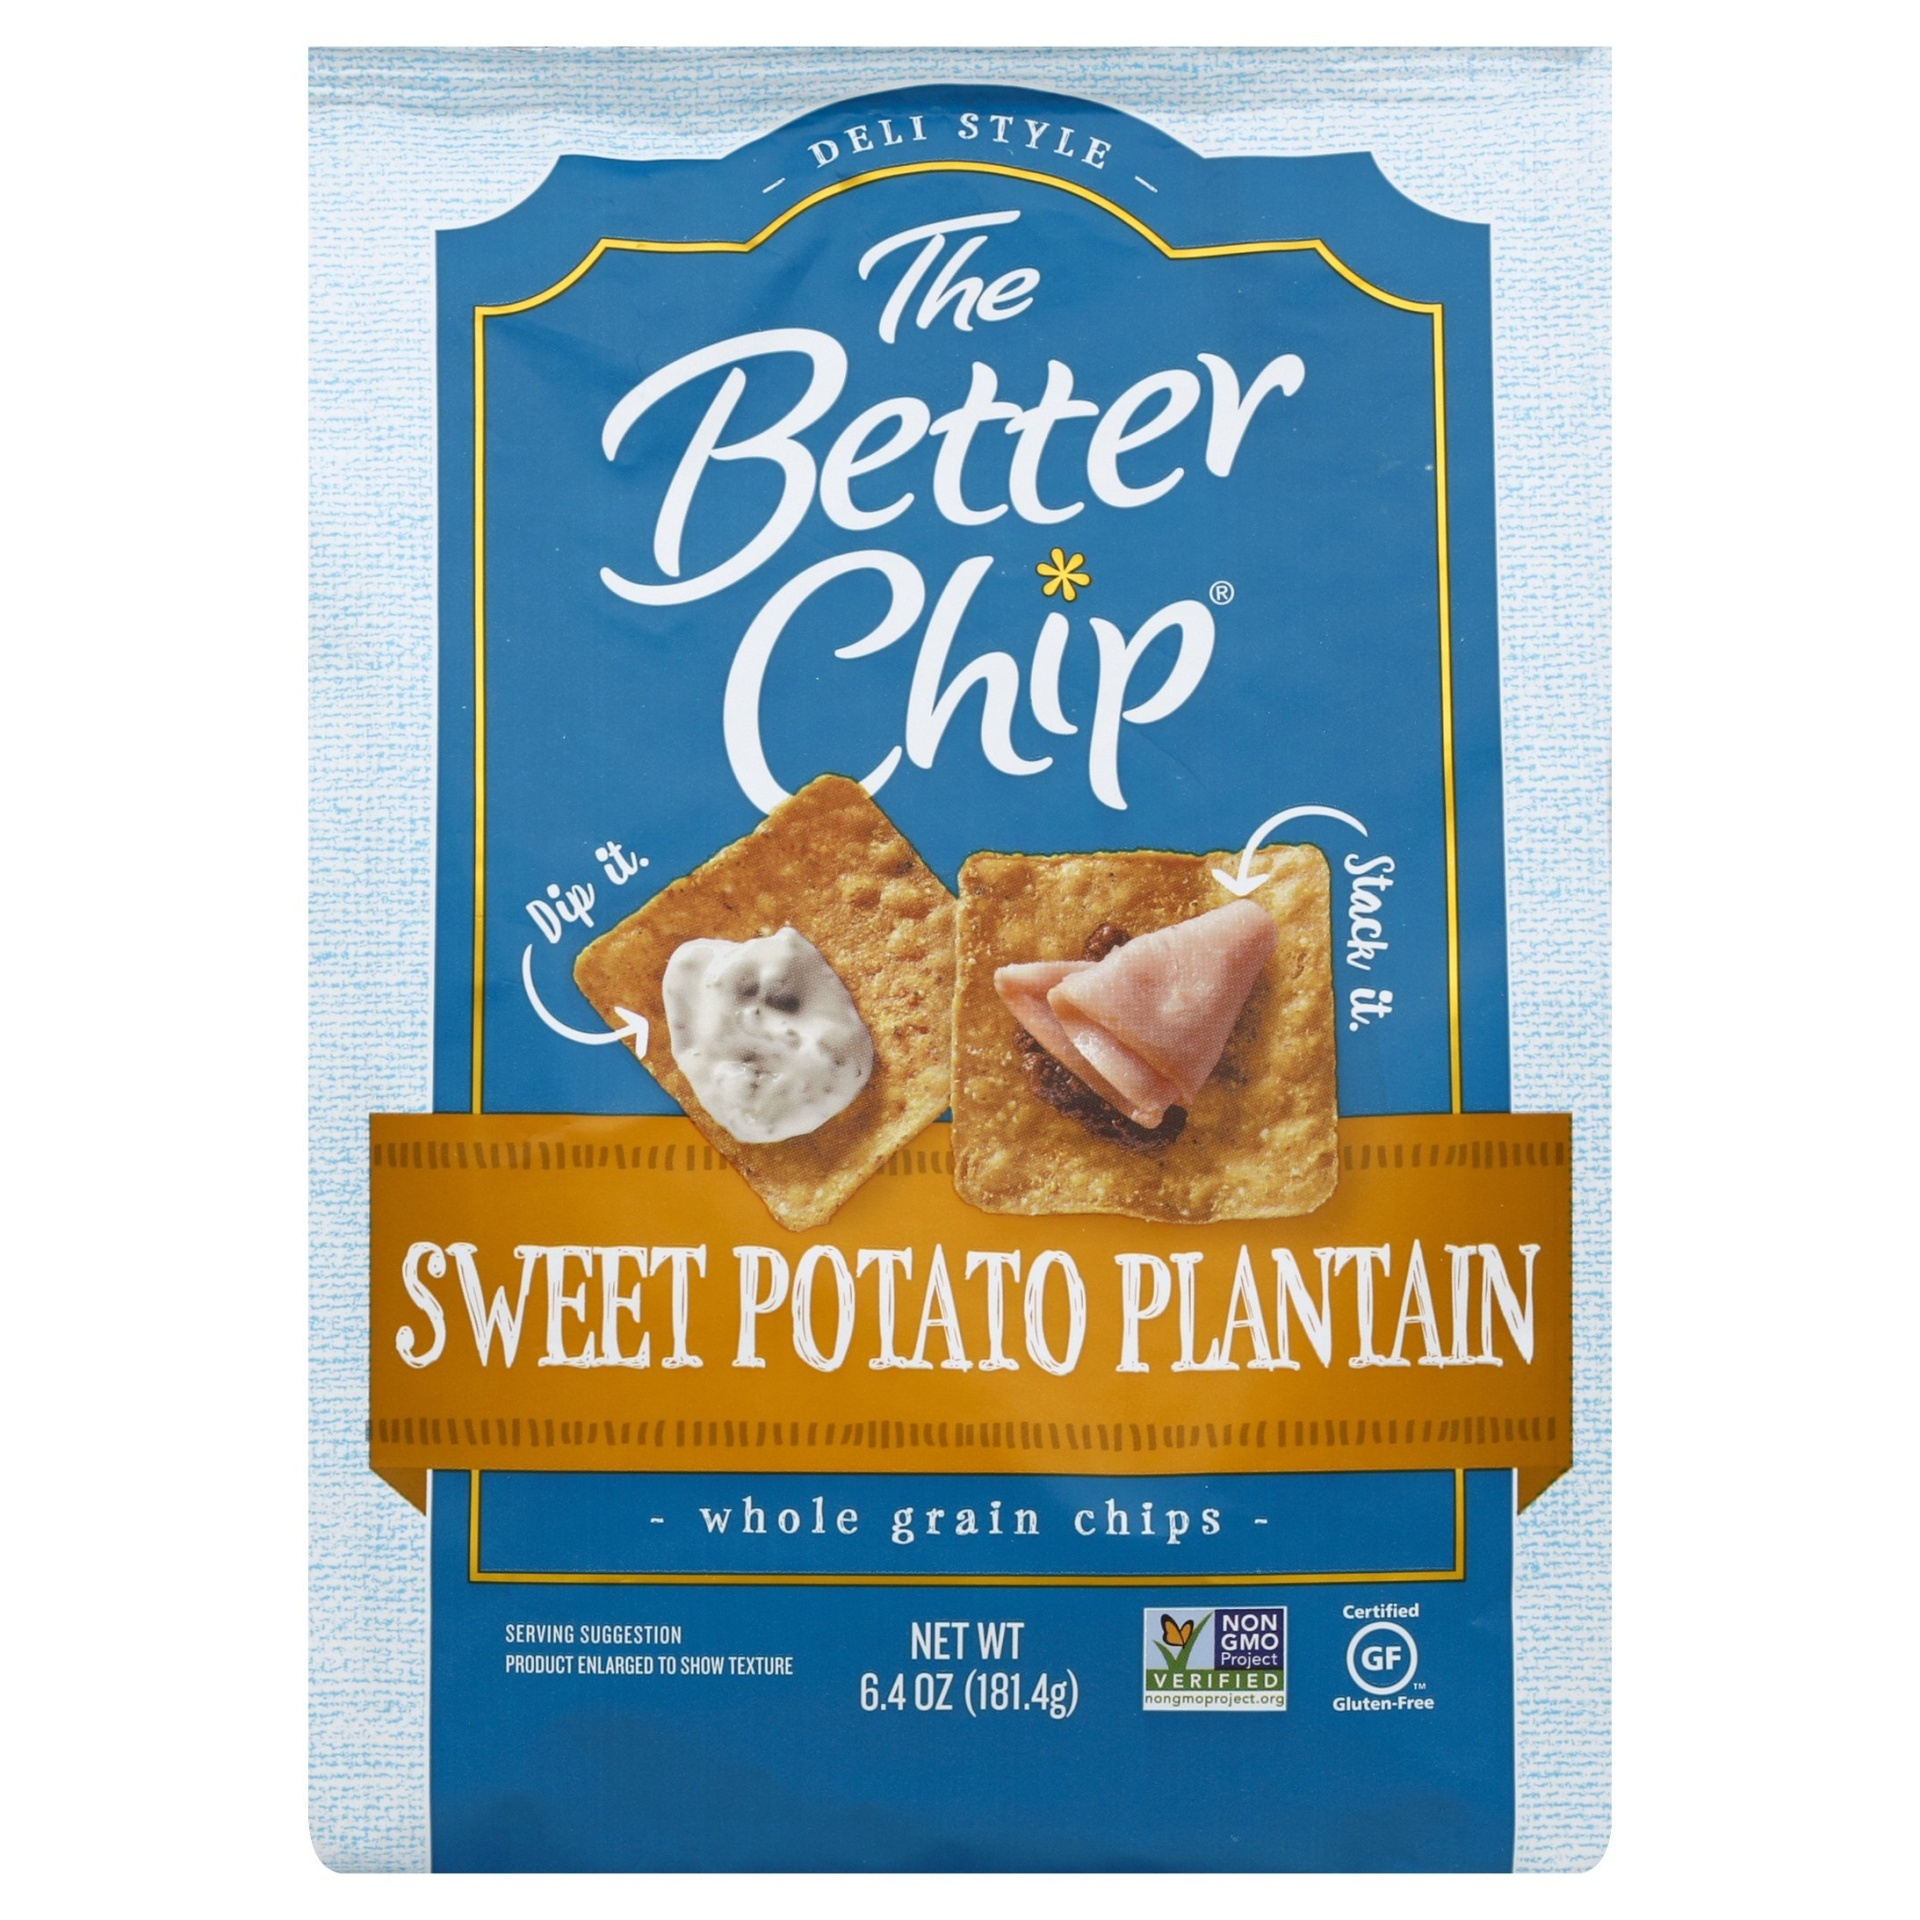 slide 1 of 8, The Better Chip Sweet Potato Plantain Whole Grain Chips,